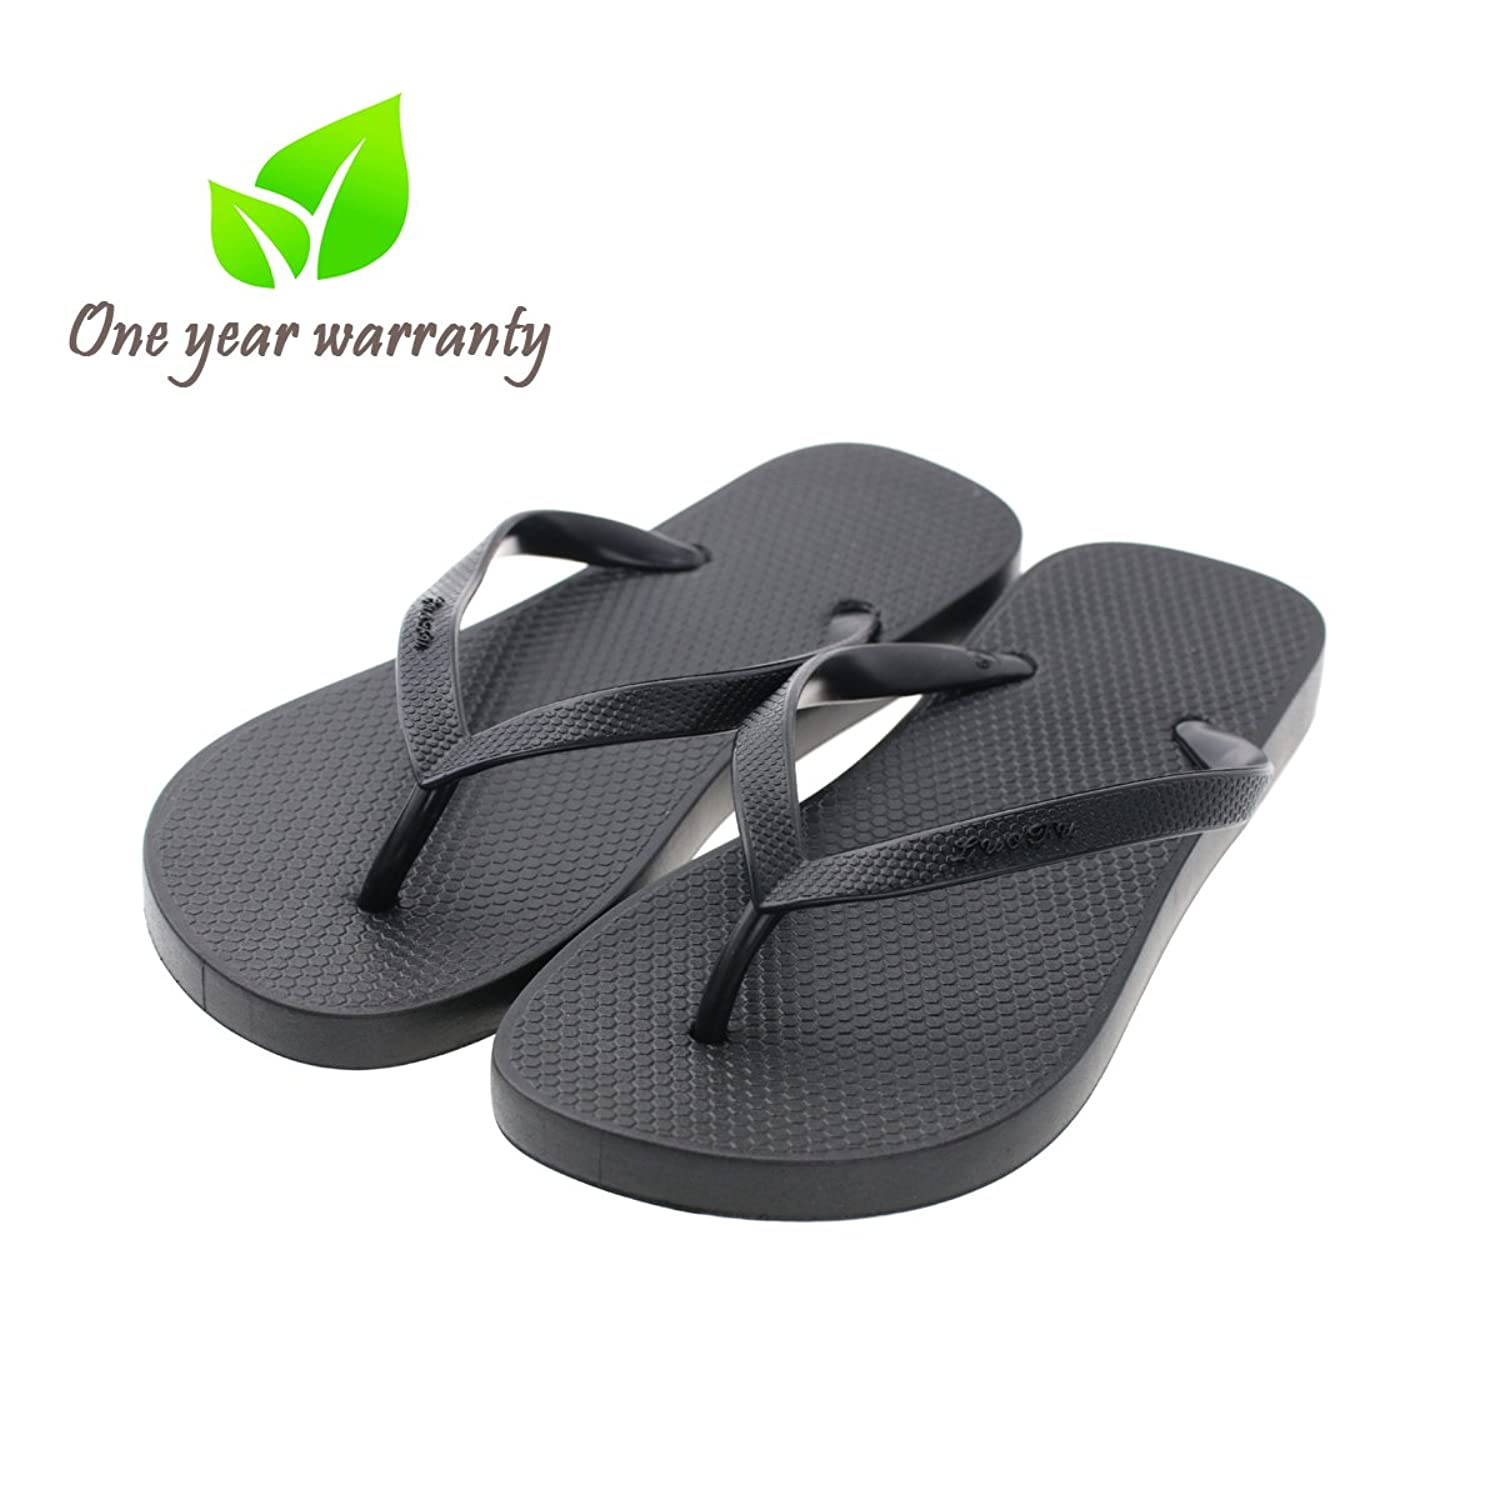 f18eb27ec174 Mua sản phẩm Memorygou Flip-Flops Beach Slim Sandal for Women Men ...